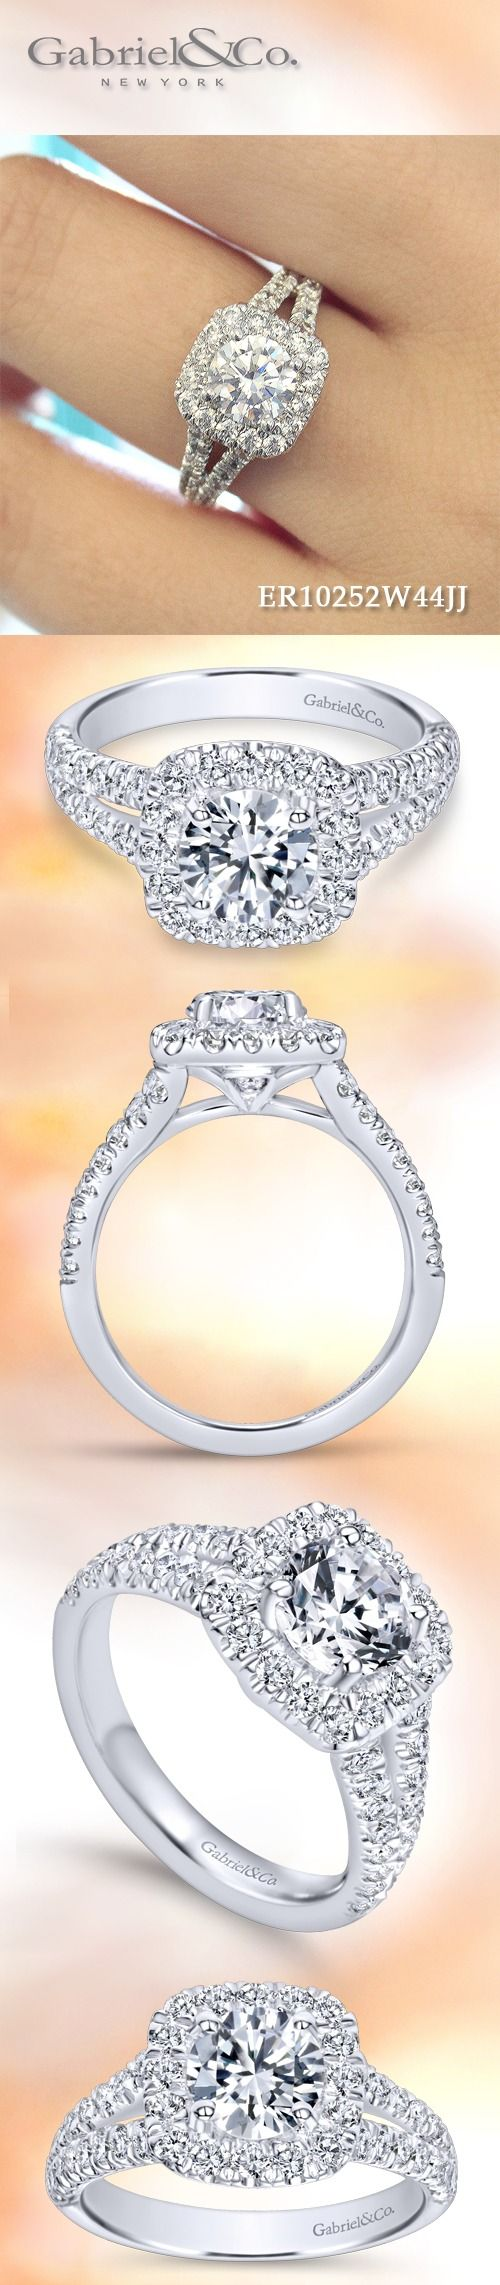 Gabriel & Co.-Voted #1 Most Preferred Fine Jewelry and Bridal Brand.  Meet James - 14k White Gold Round Halo Engagement Ring.